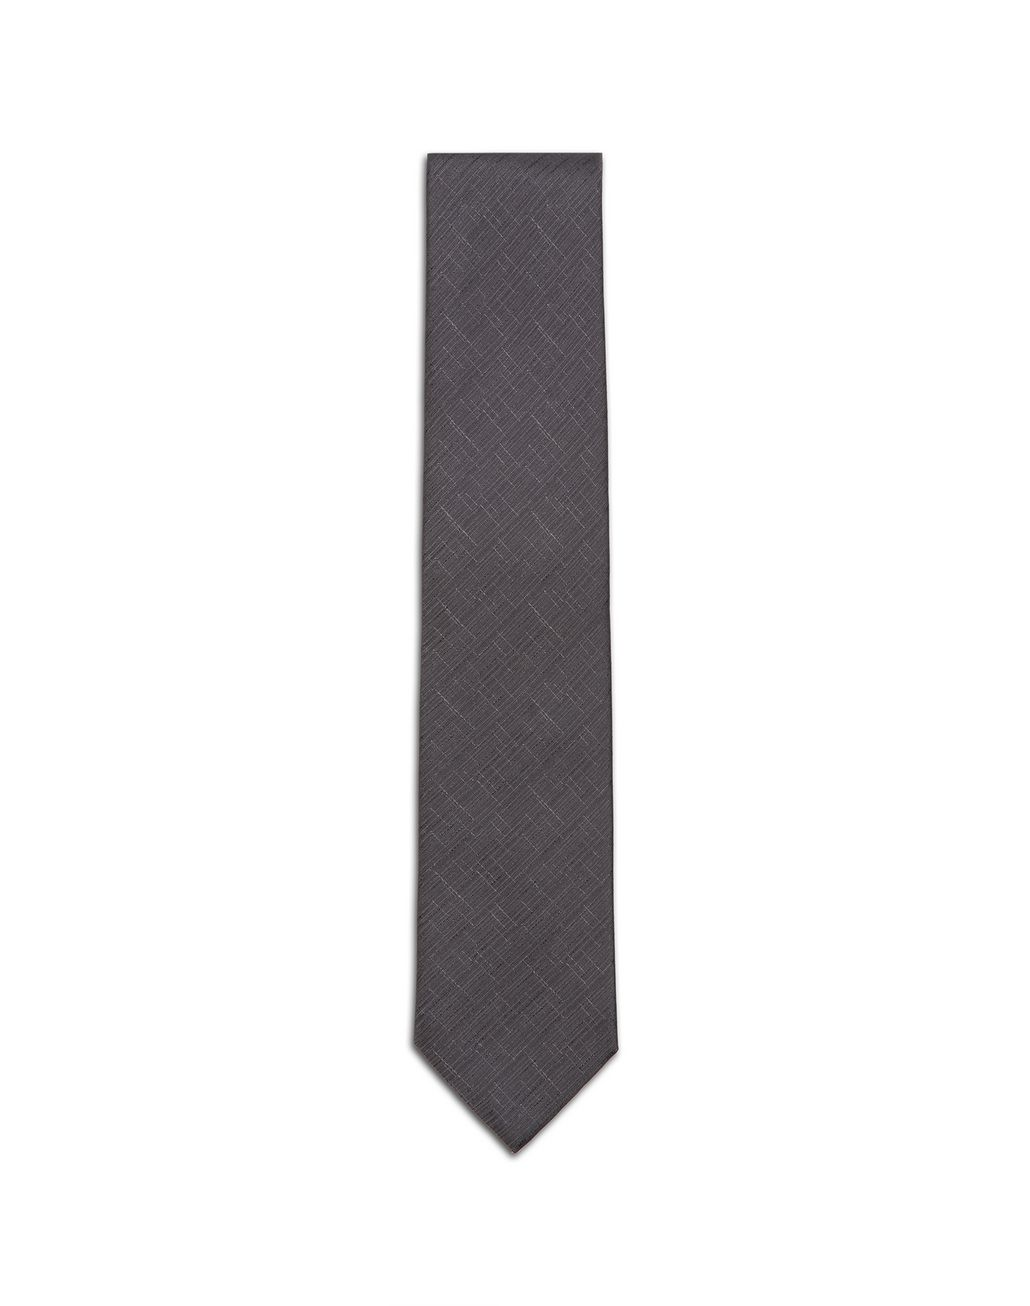 BRIONI Graphite Grey Shantung Tie Tie & Pocket Square Man f